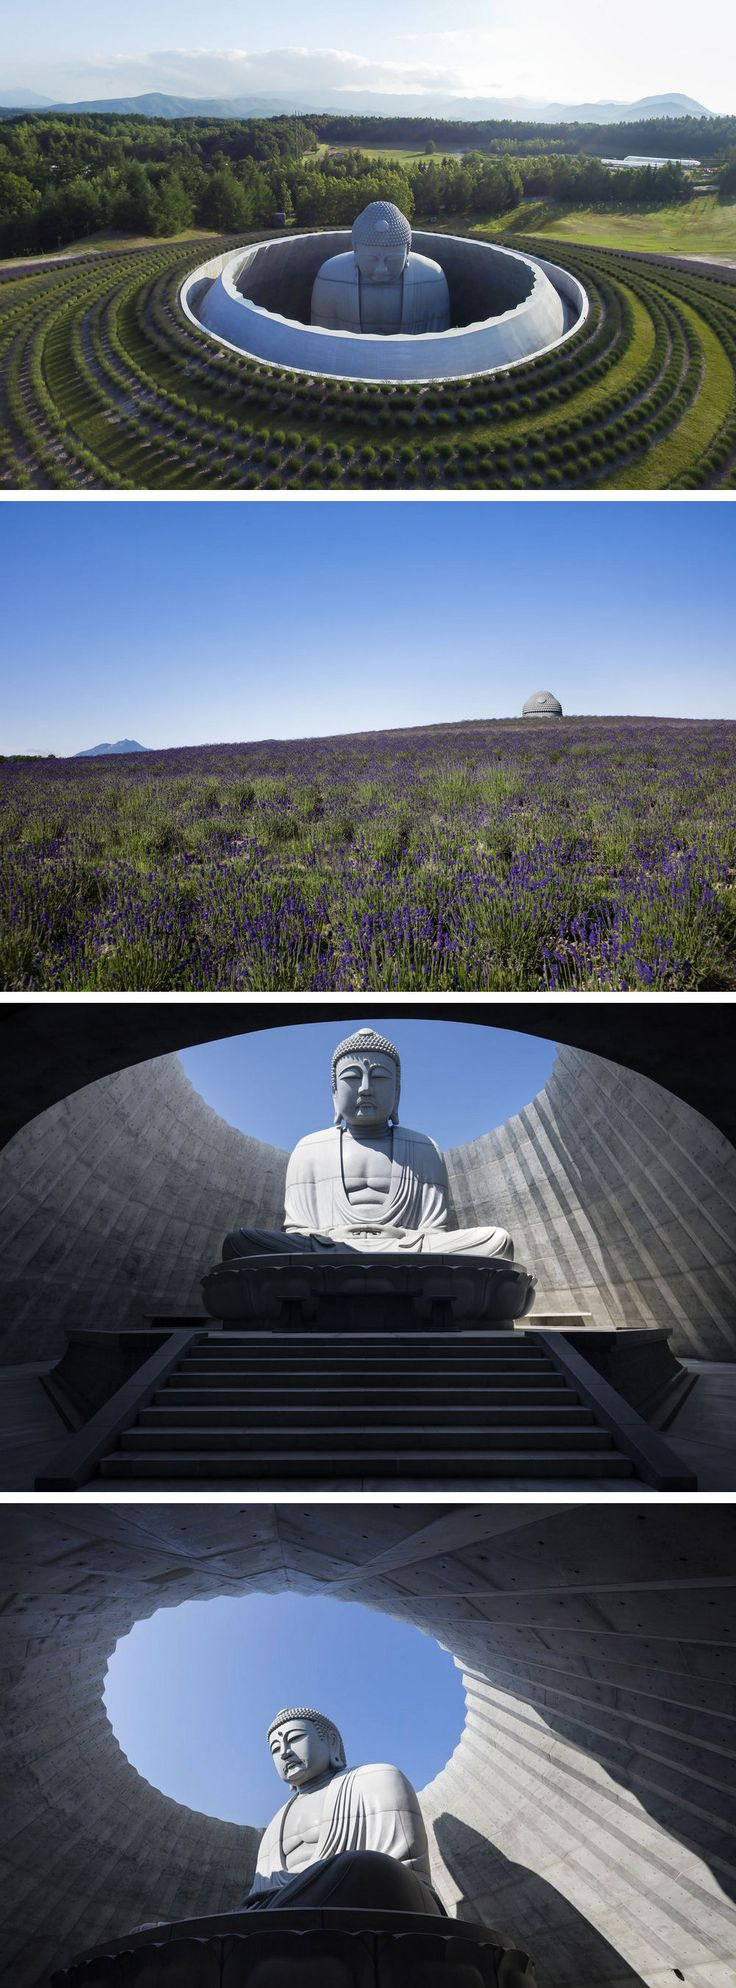 A Gigantic Buddha Sculptures Emerges from the Top of a Hill in Japan